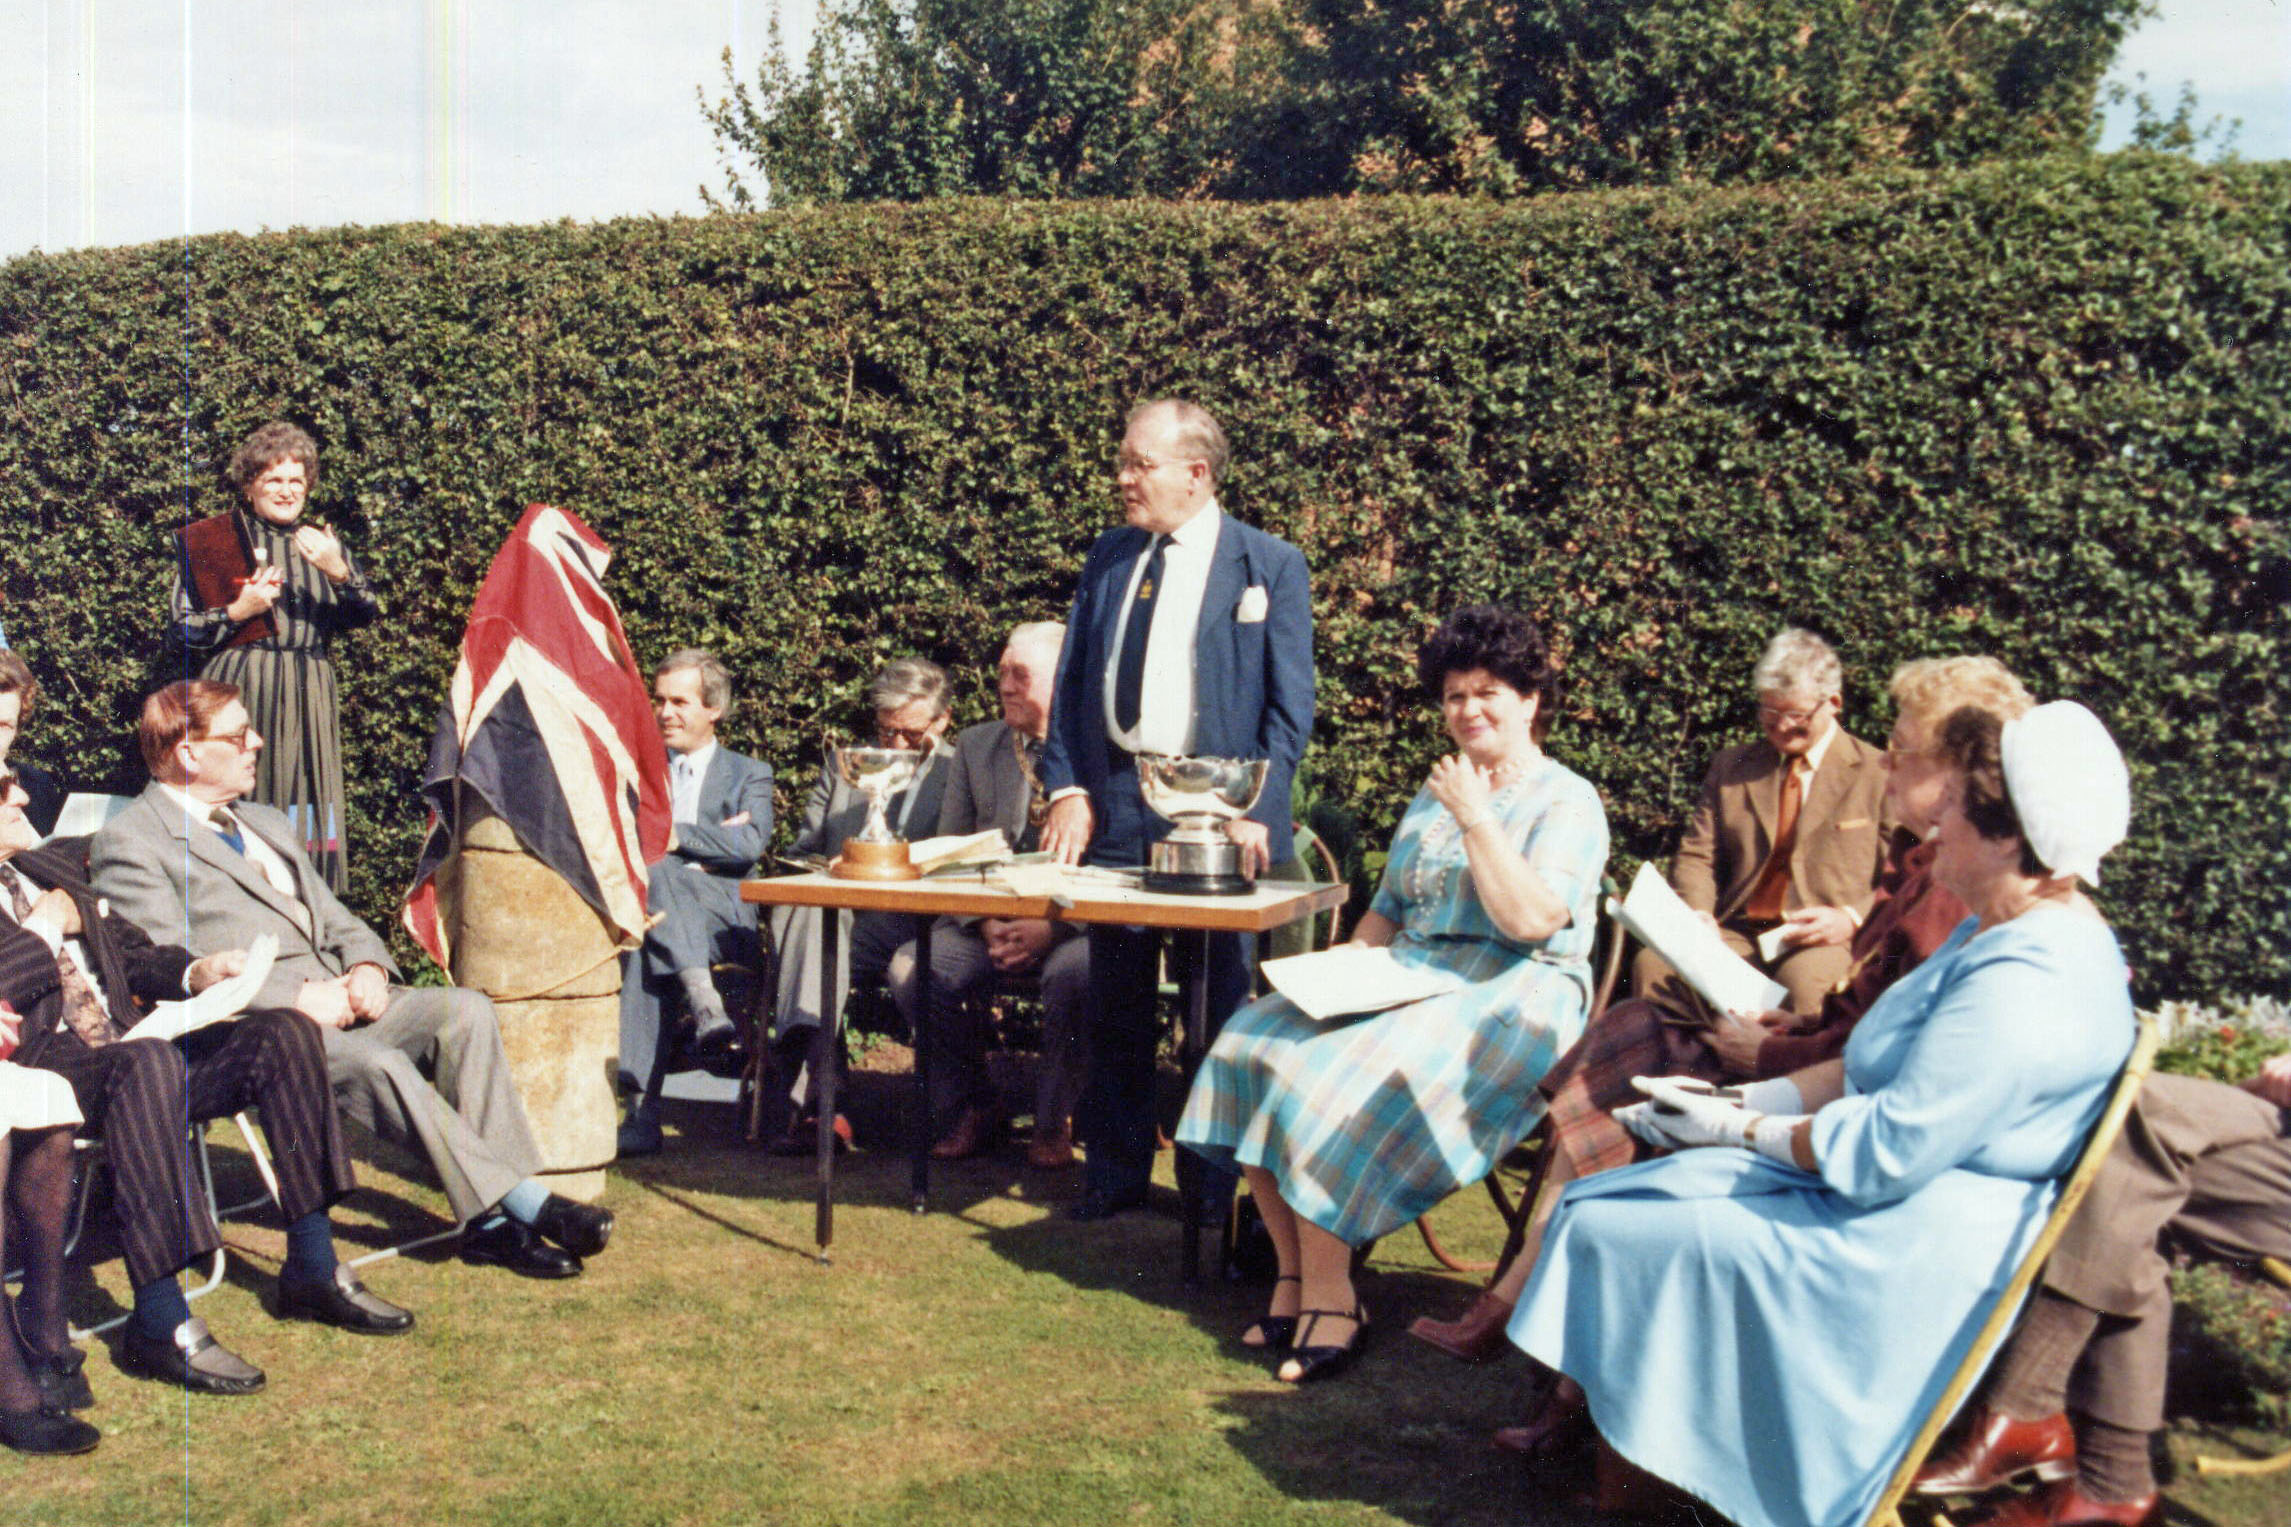 Best Kept Village Ceremony (1985)